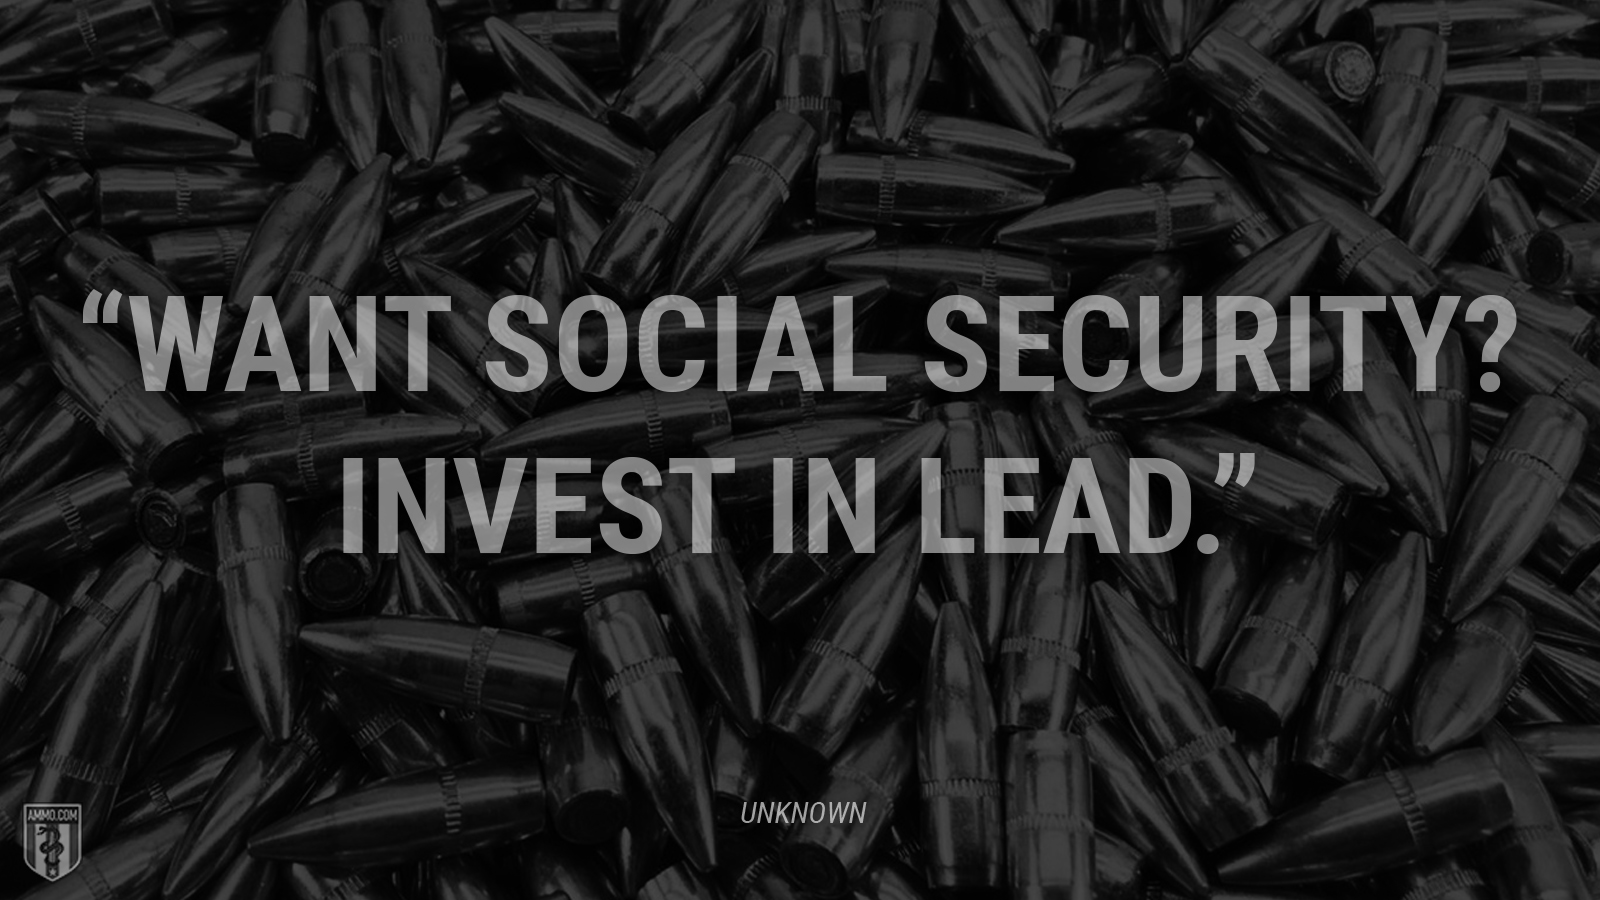 """Want social security? Invest in lead."" - Unknown"